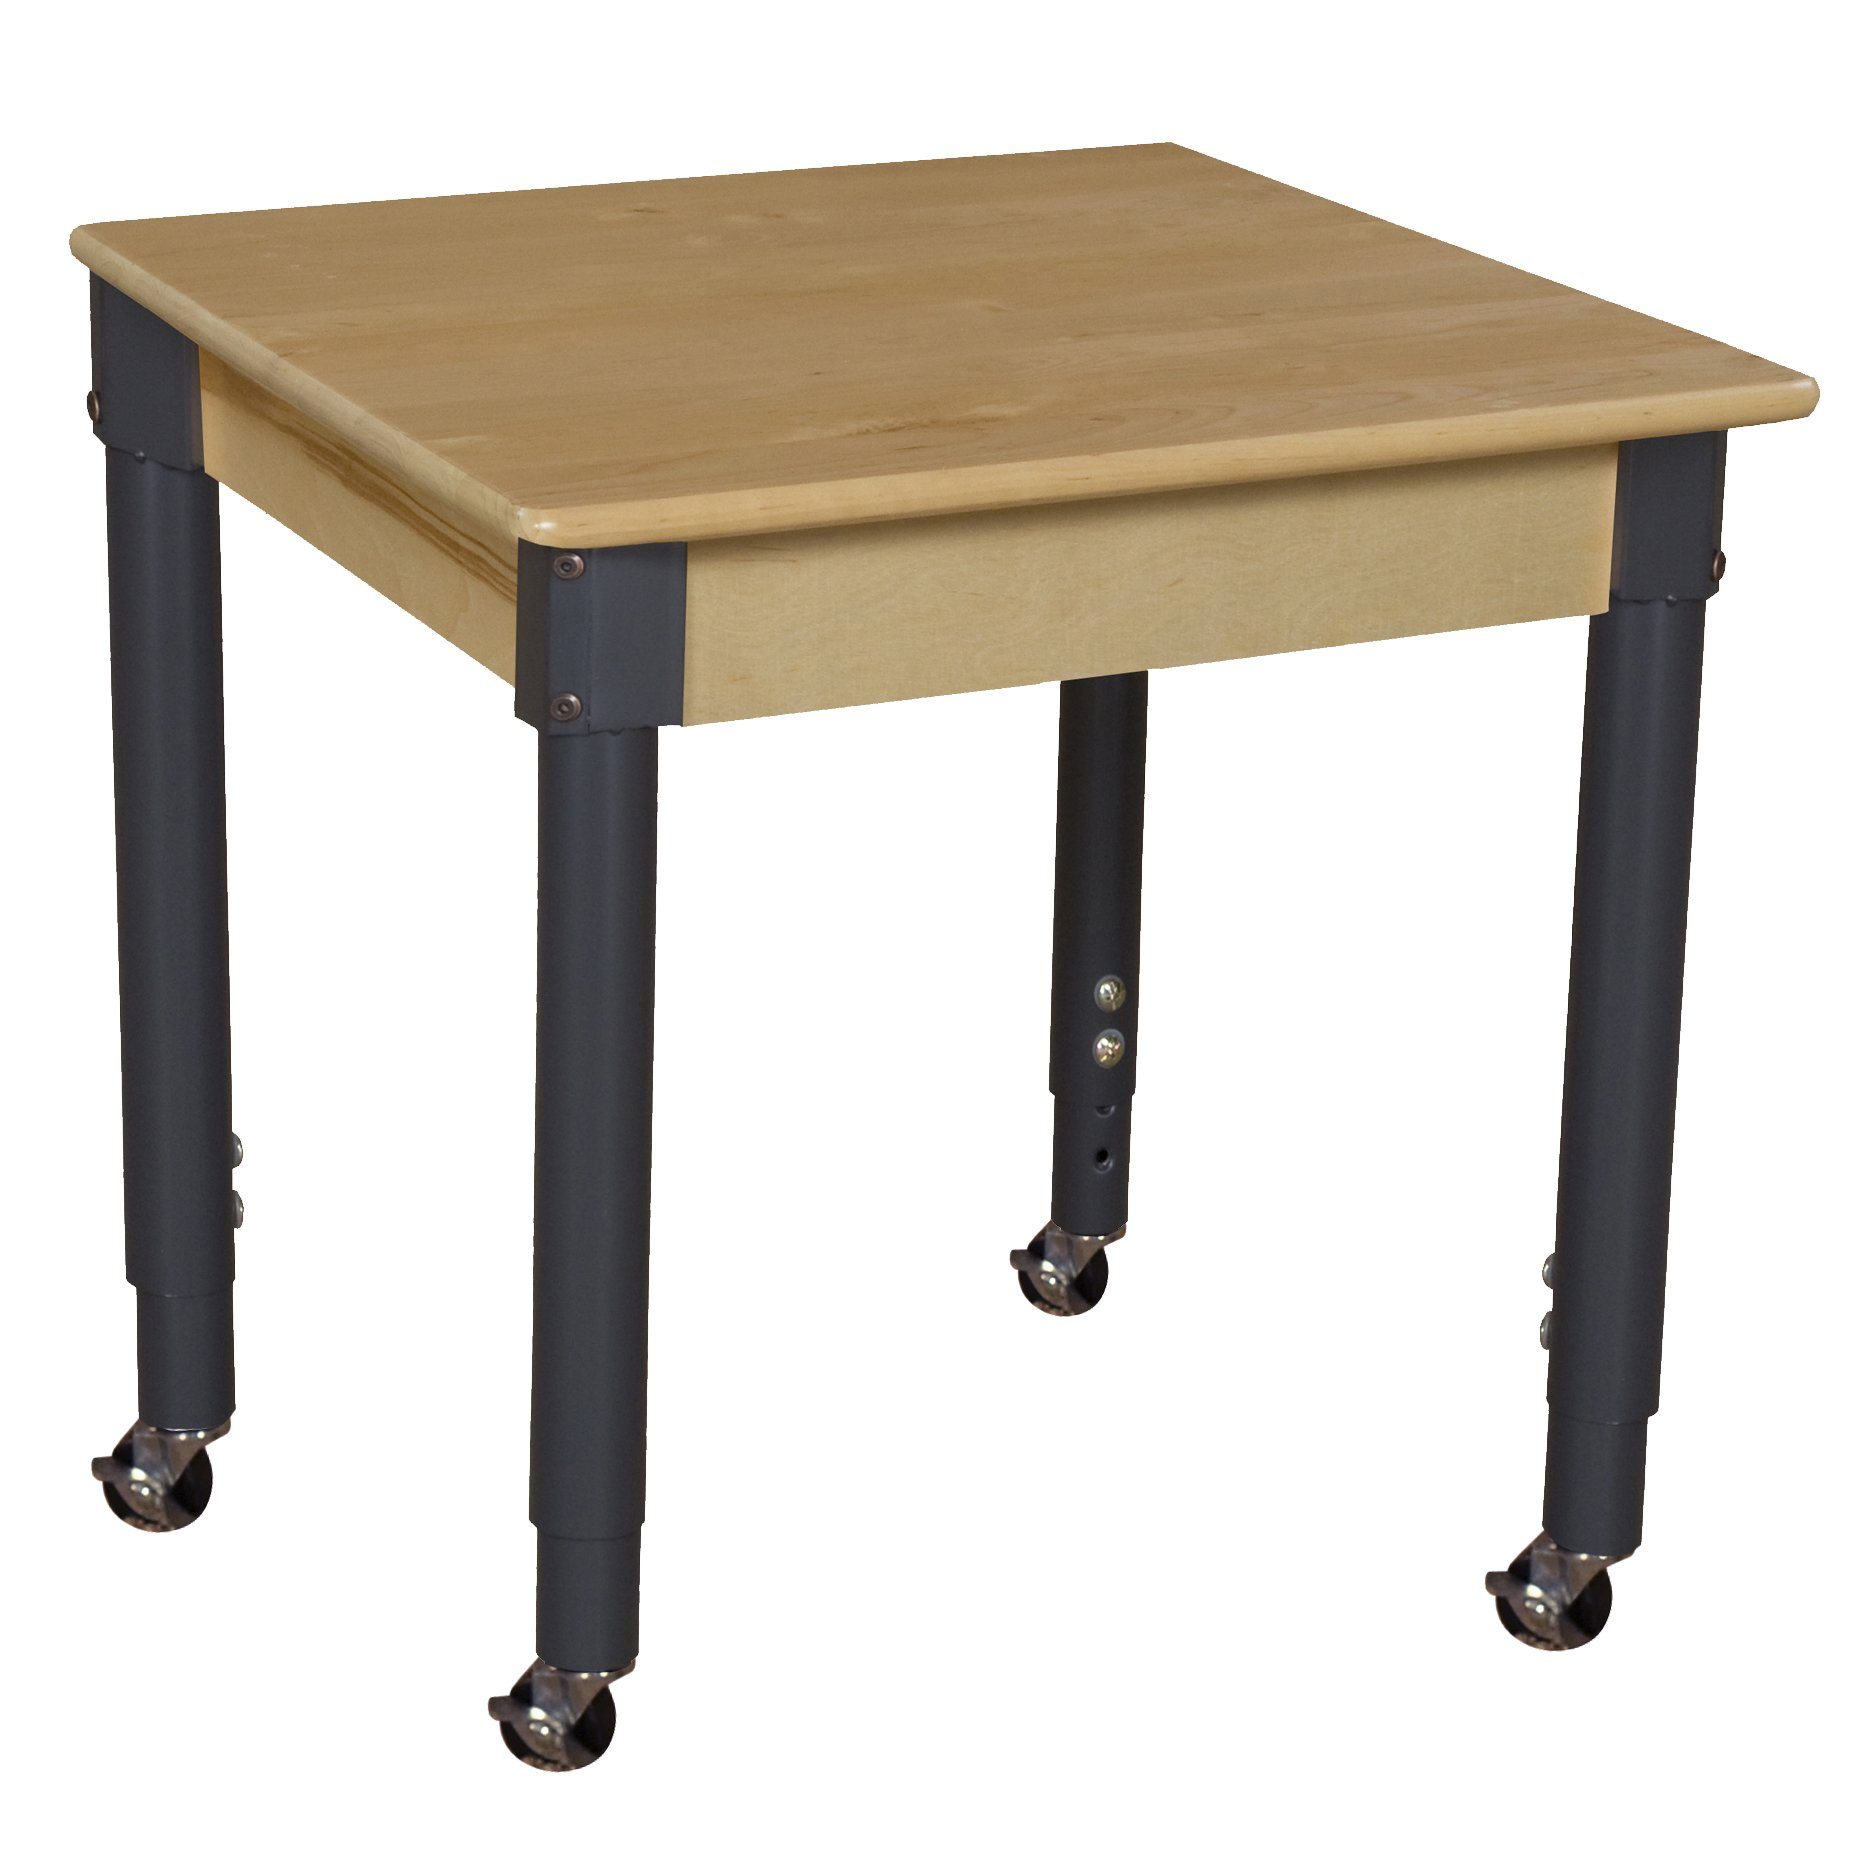 Wood Designs WD824A1829C6 Mobile 24'' Square Hardwood Table with 20''-31'' Adjustable Legs